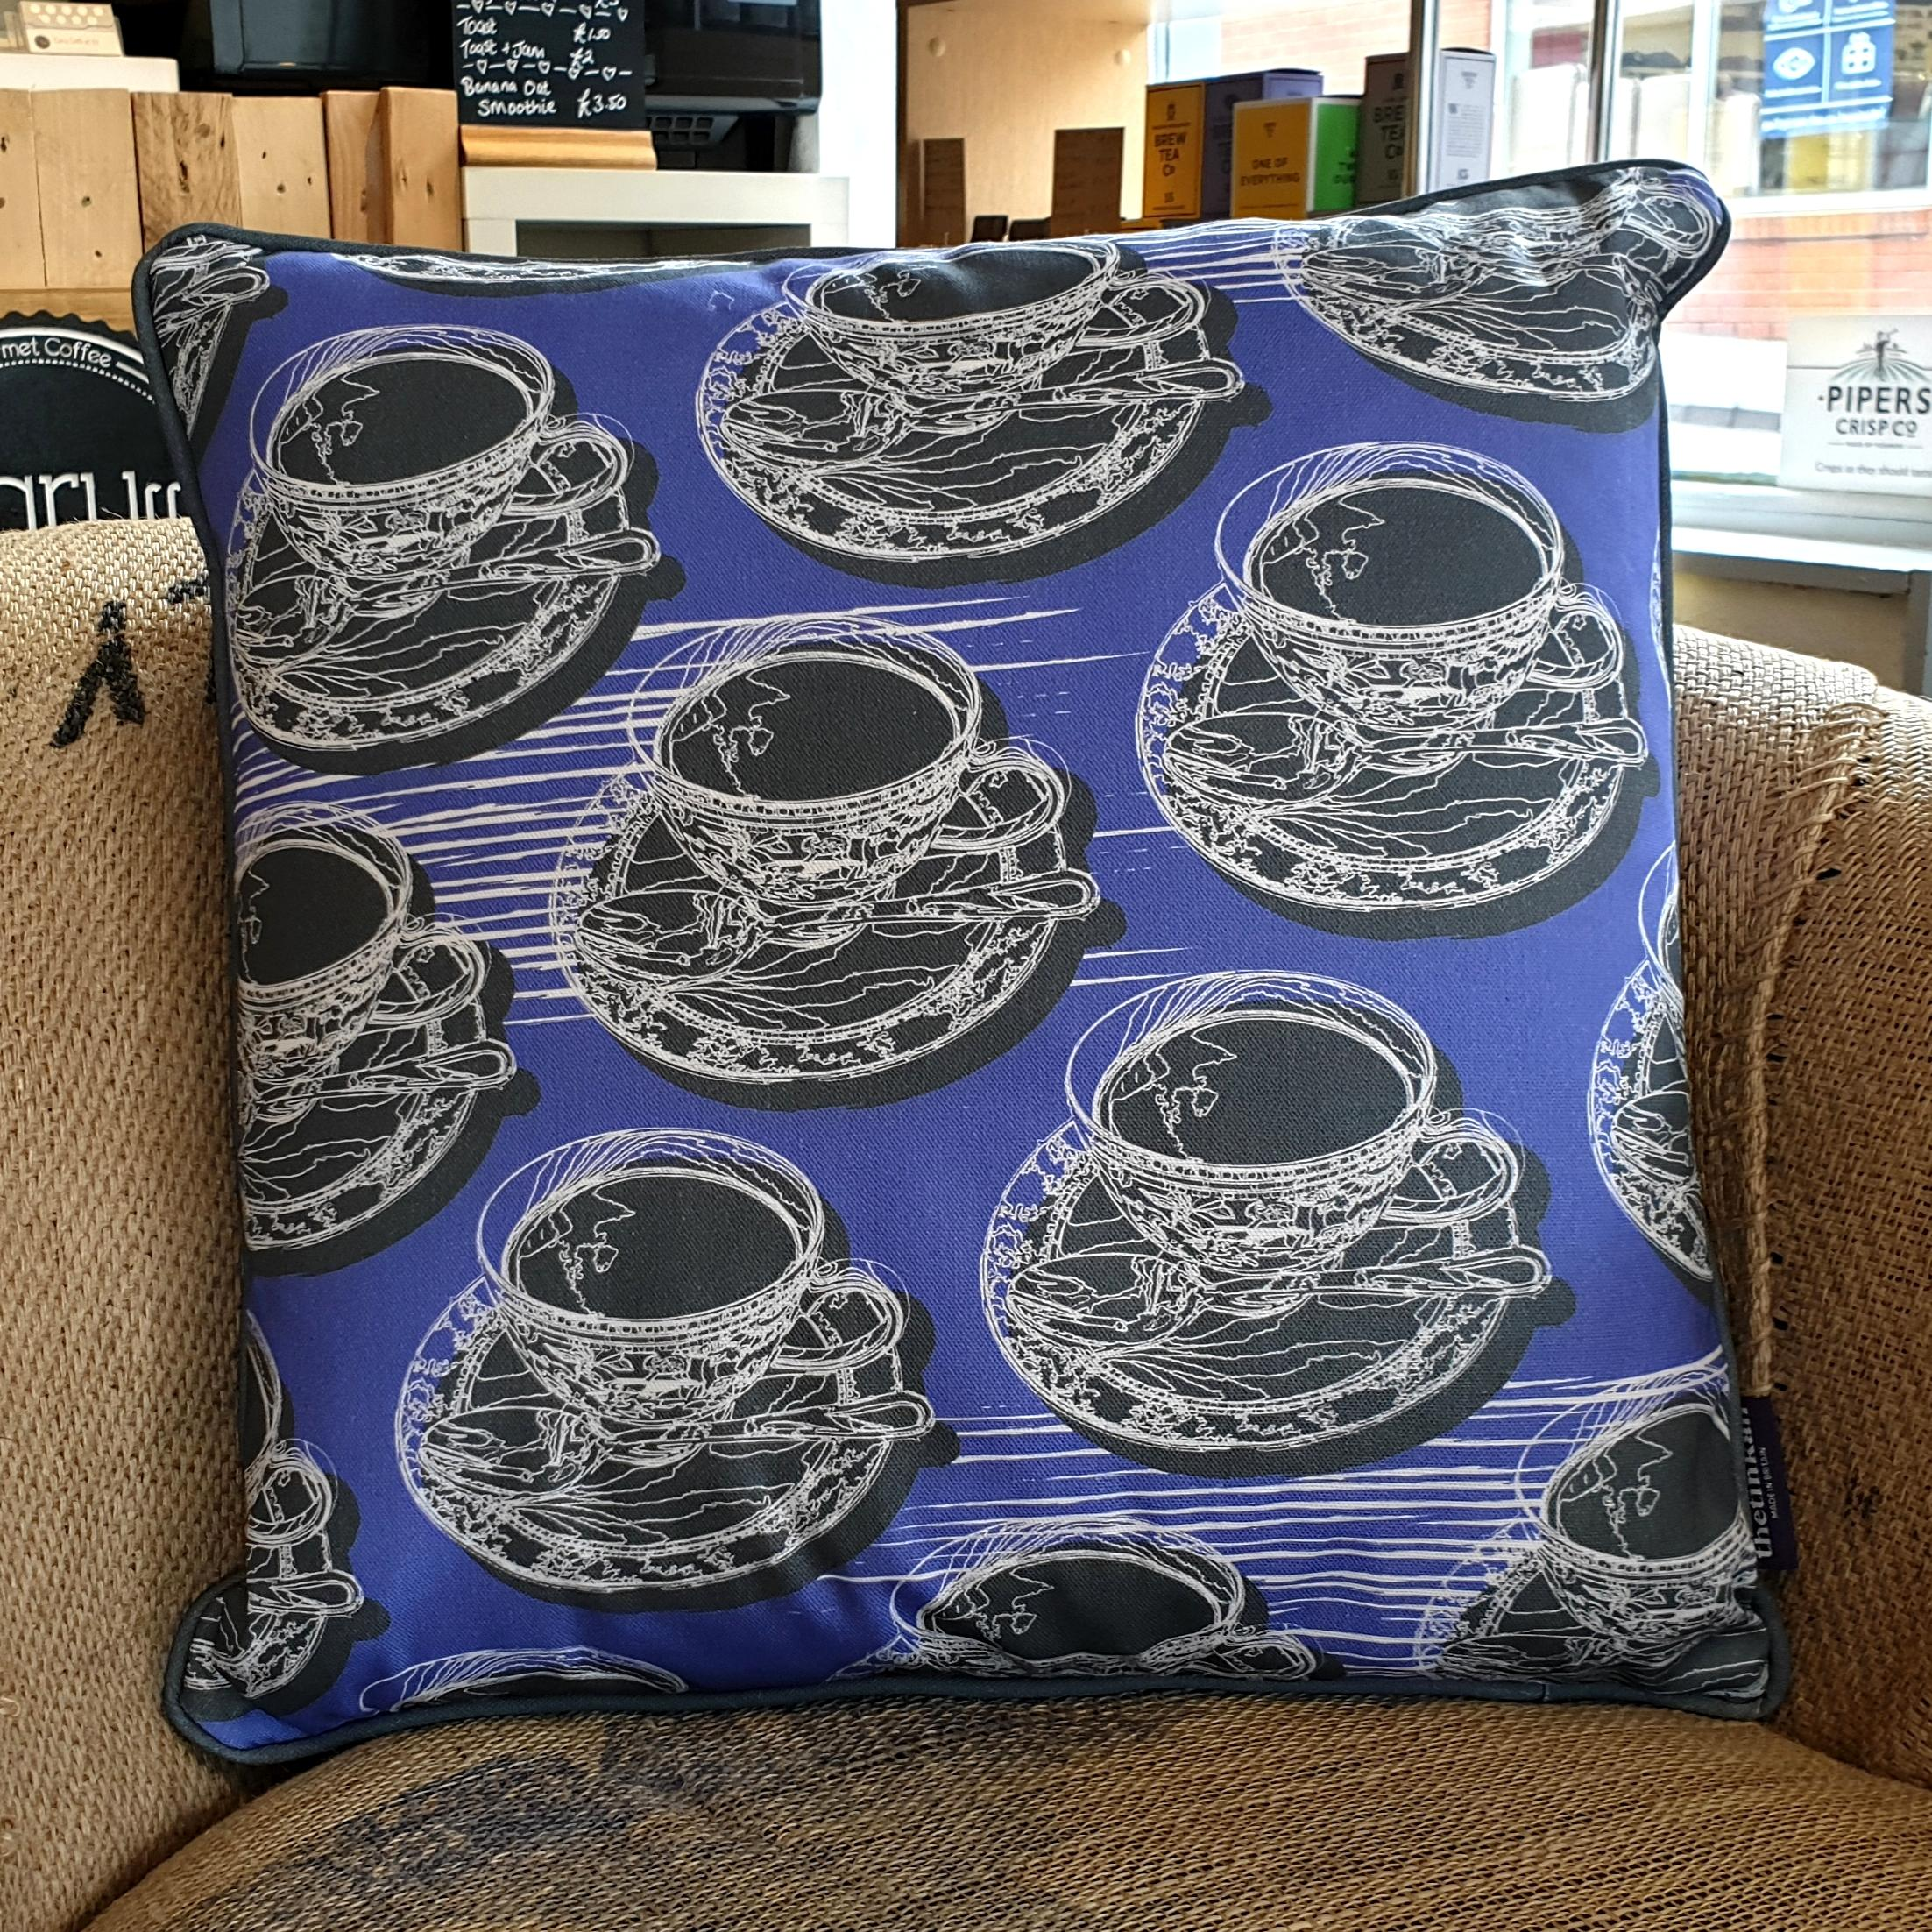 Double-sided violet purple 45cm square retro Afternoon Tea cushion with artistic white shards and grey handcrafted piping designed by thetinkan. White traced outline of multiple British teacups and saucers each colour filled in charcoal grey. Available with an optional luxury cushion inner pad. VIEW PRODUCT >>